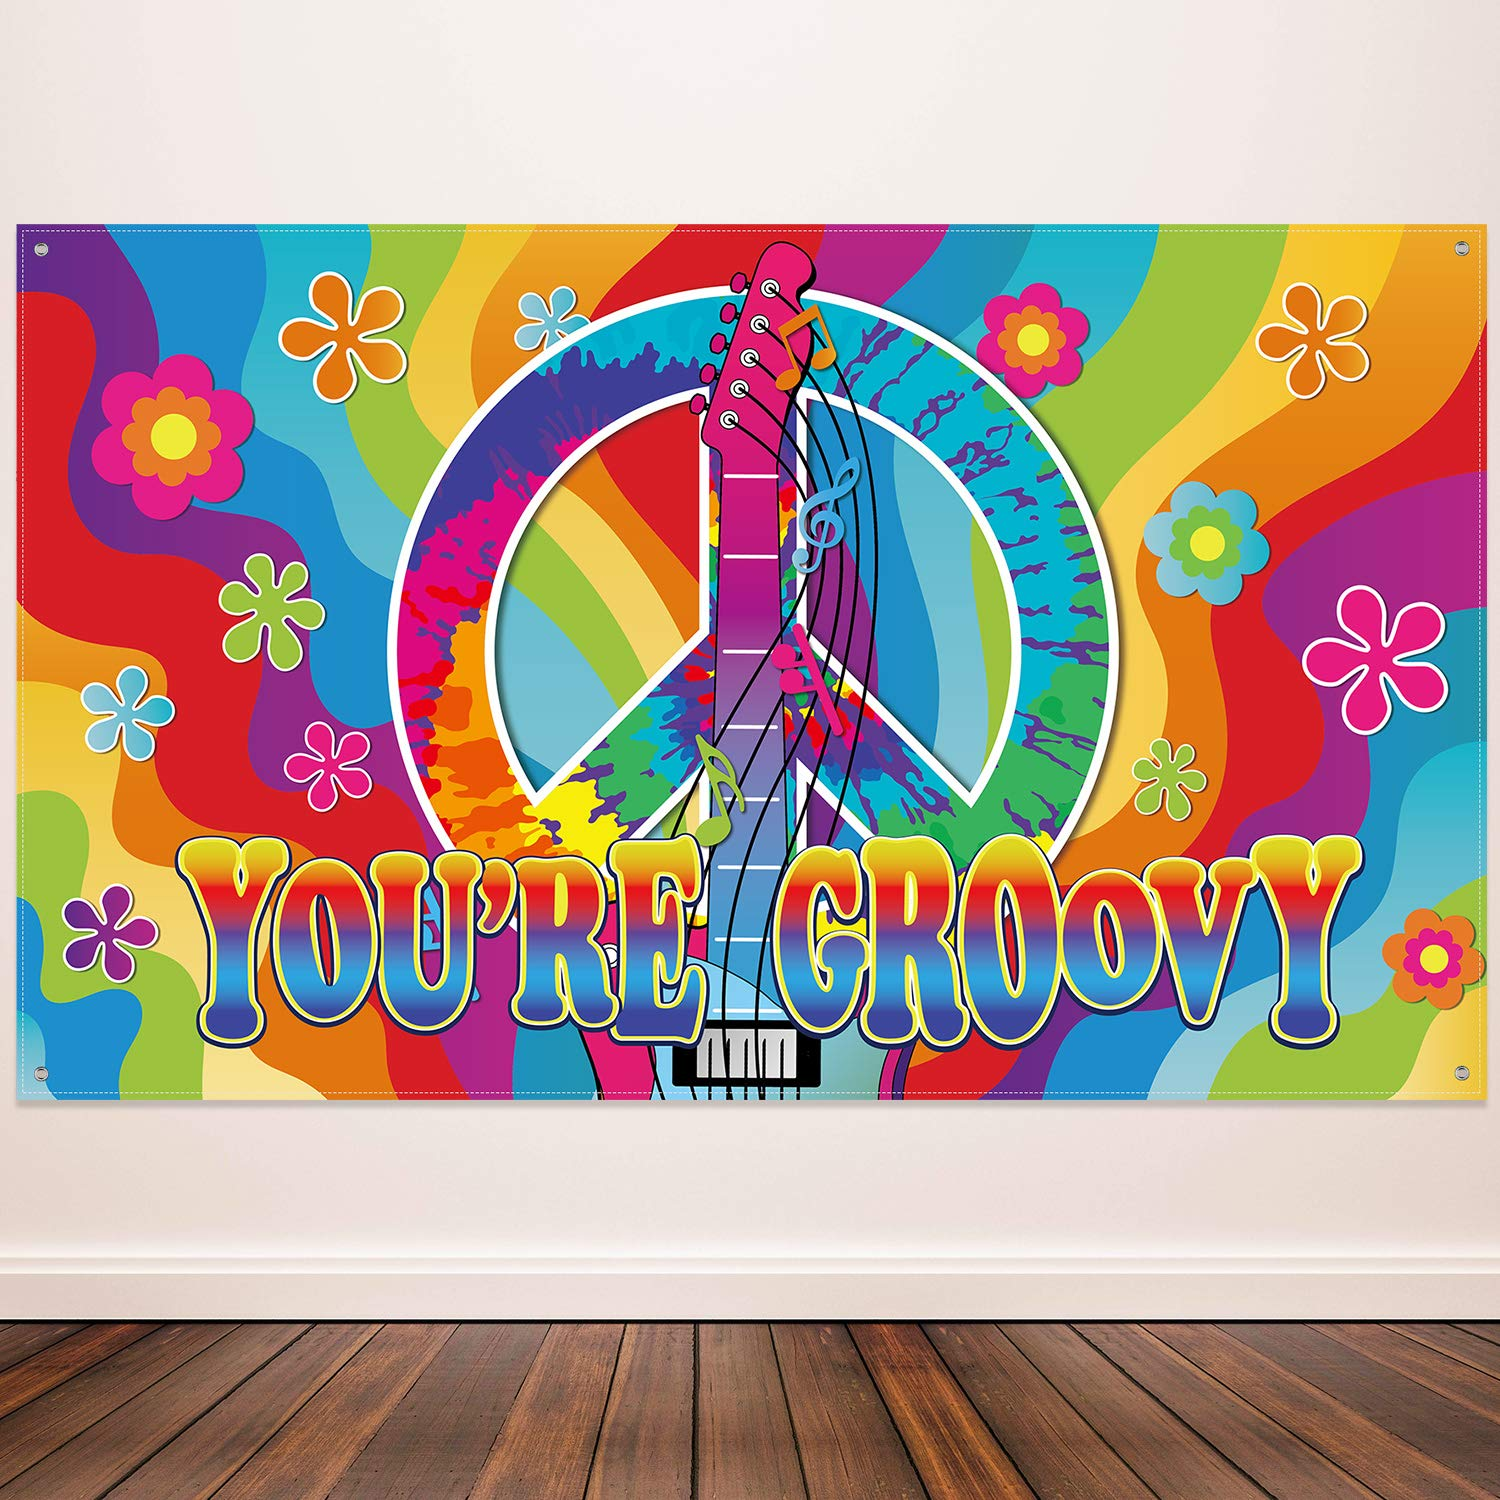 60's Theme Party Decorations, Groovy Sign 60's Party Scene Setters Wall Decoration 60s Photo Backdrop Banner with Rope for Hippie Theme Groovy Party, 72.8 x 43.3 Inch